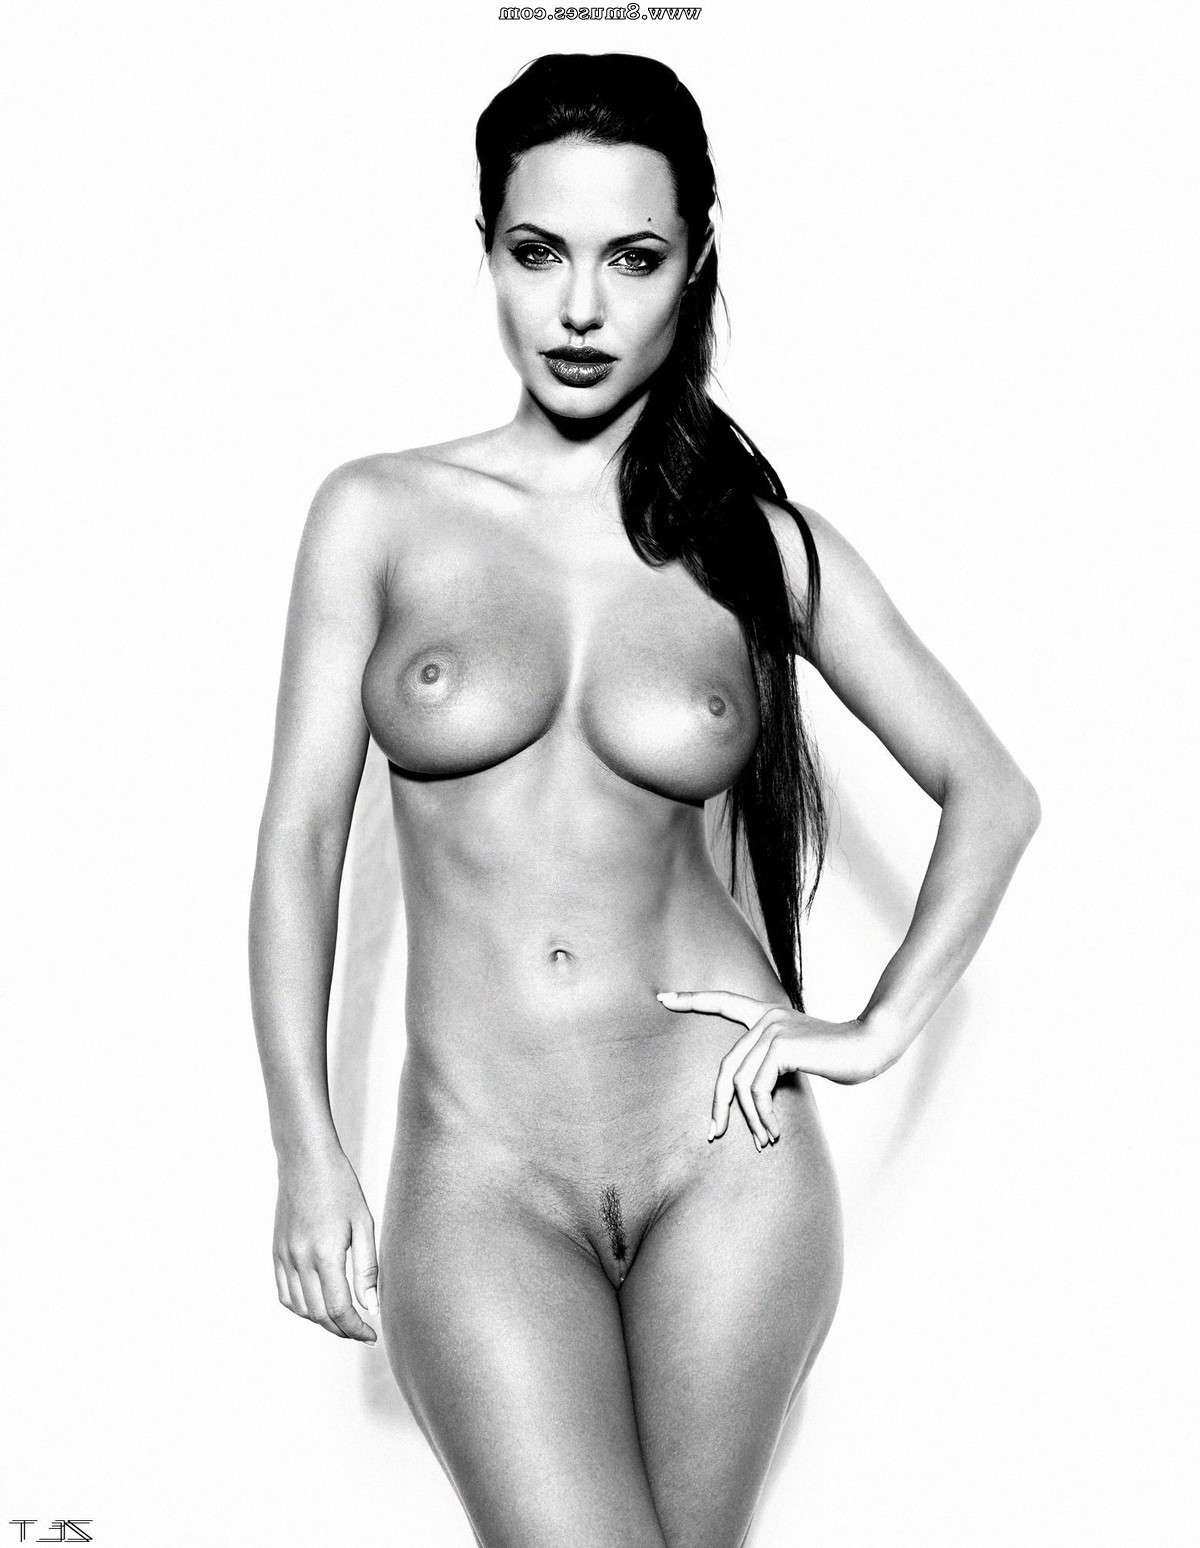 Fake-Celebrities-Sex-Pictures/Angelina-Jolie Angelina_Jolie__8muses_-_Sex_and_Porn_Comics_459.jpg